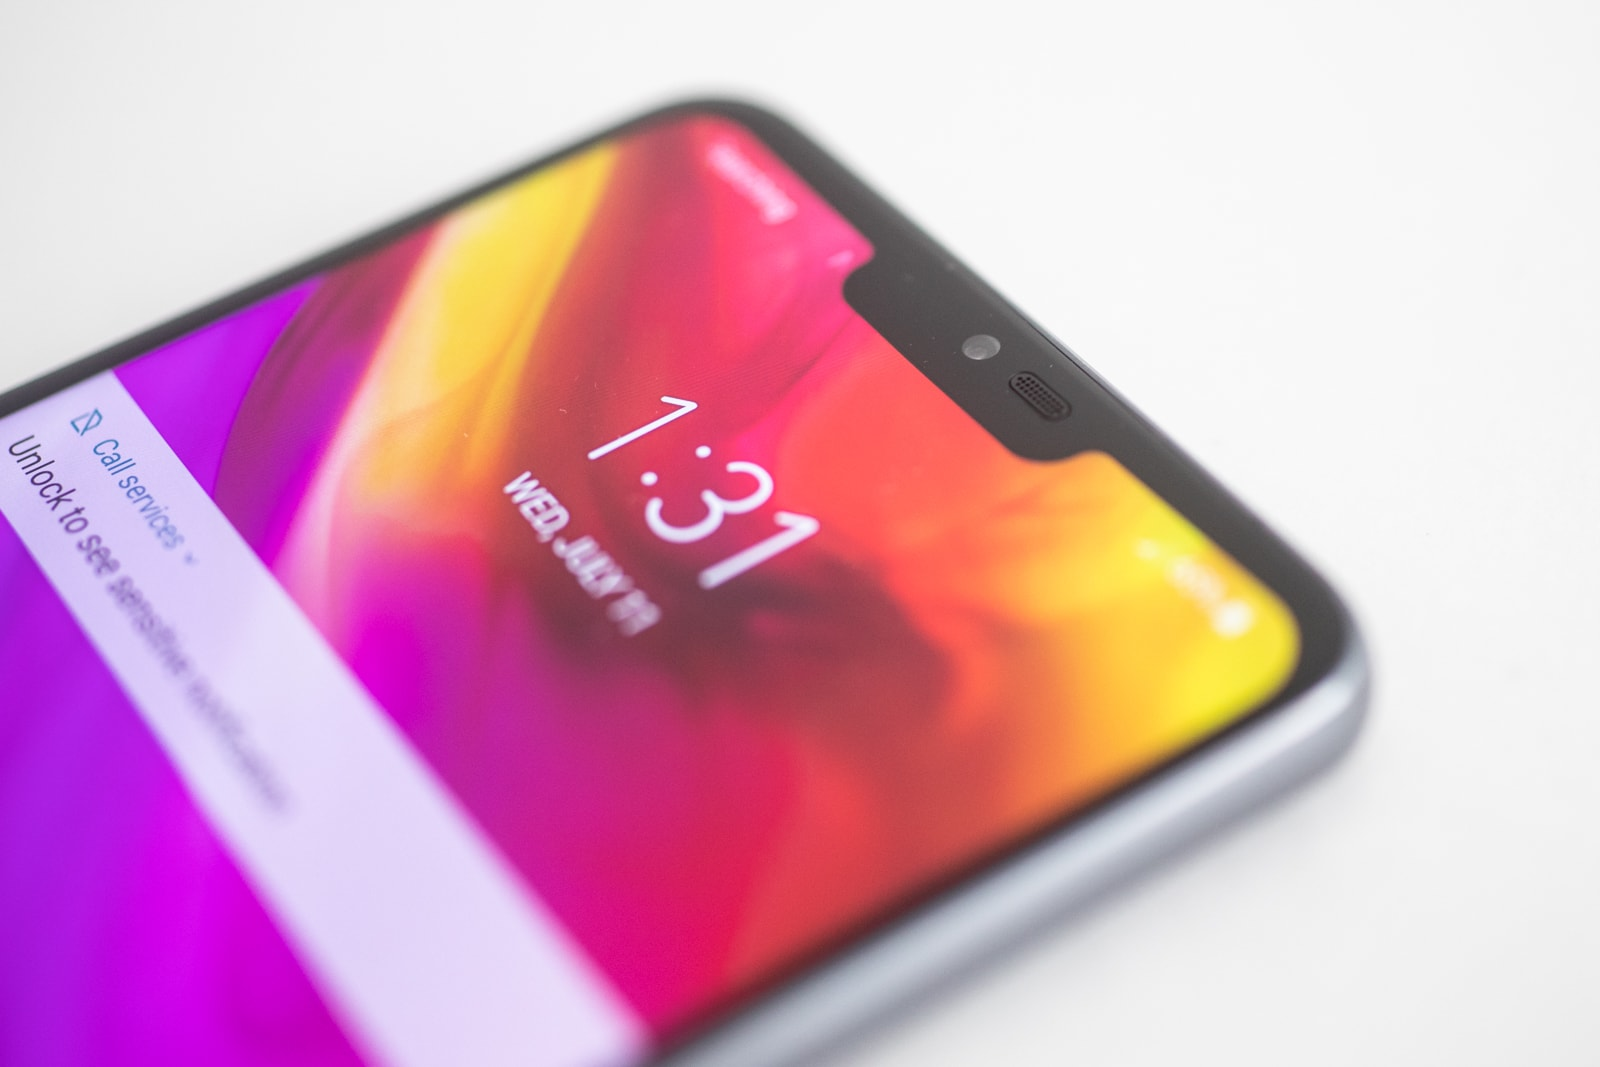 LG G7 ThinQ Review: To Notch Or Not To Notch?